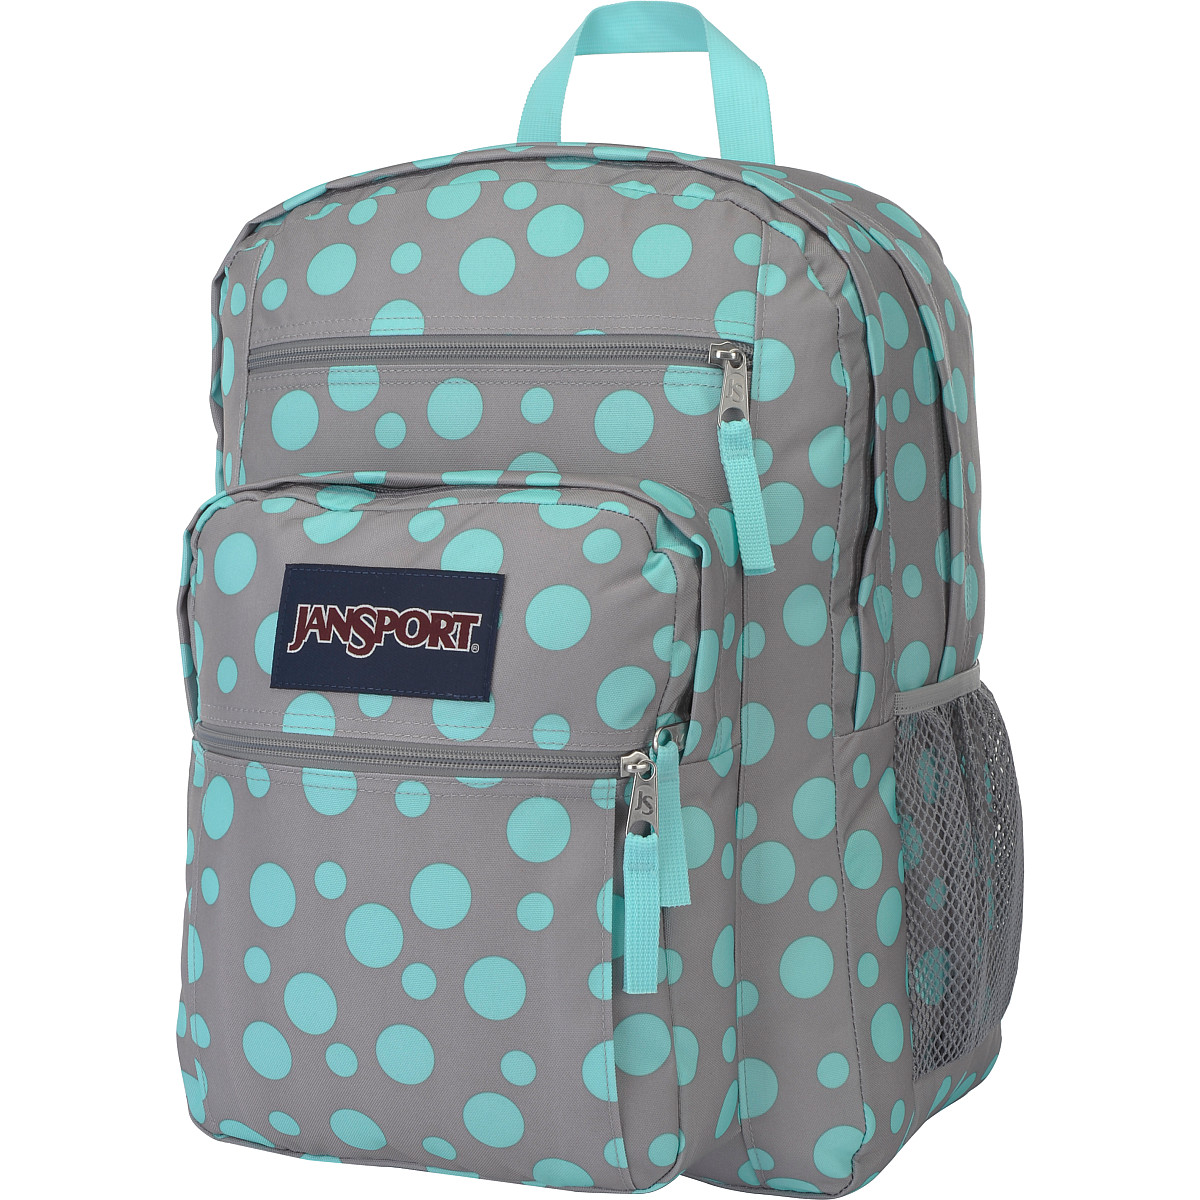 Where To Buy A Jansport Backpack vBK3eDe8